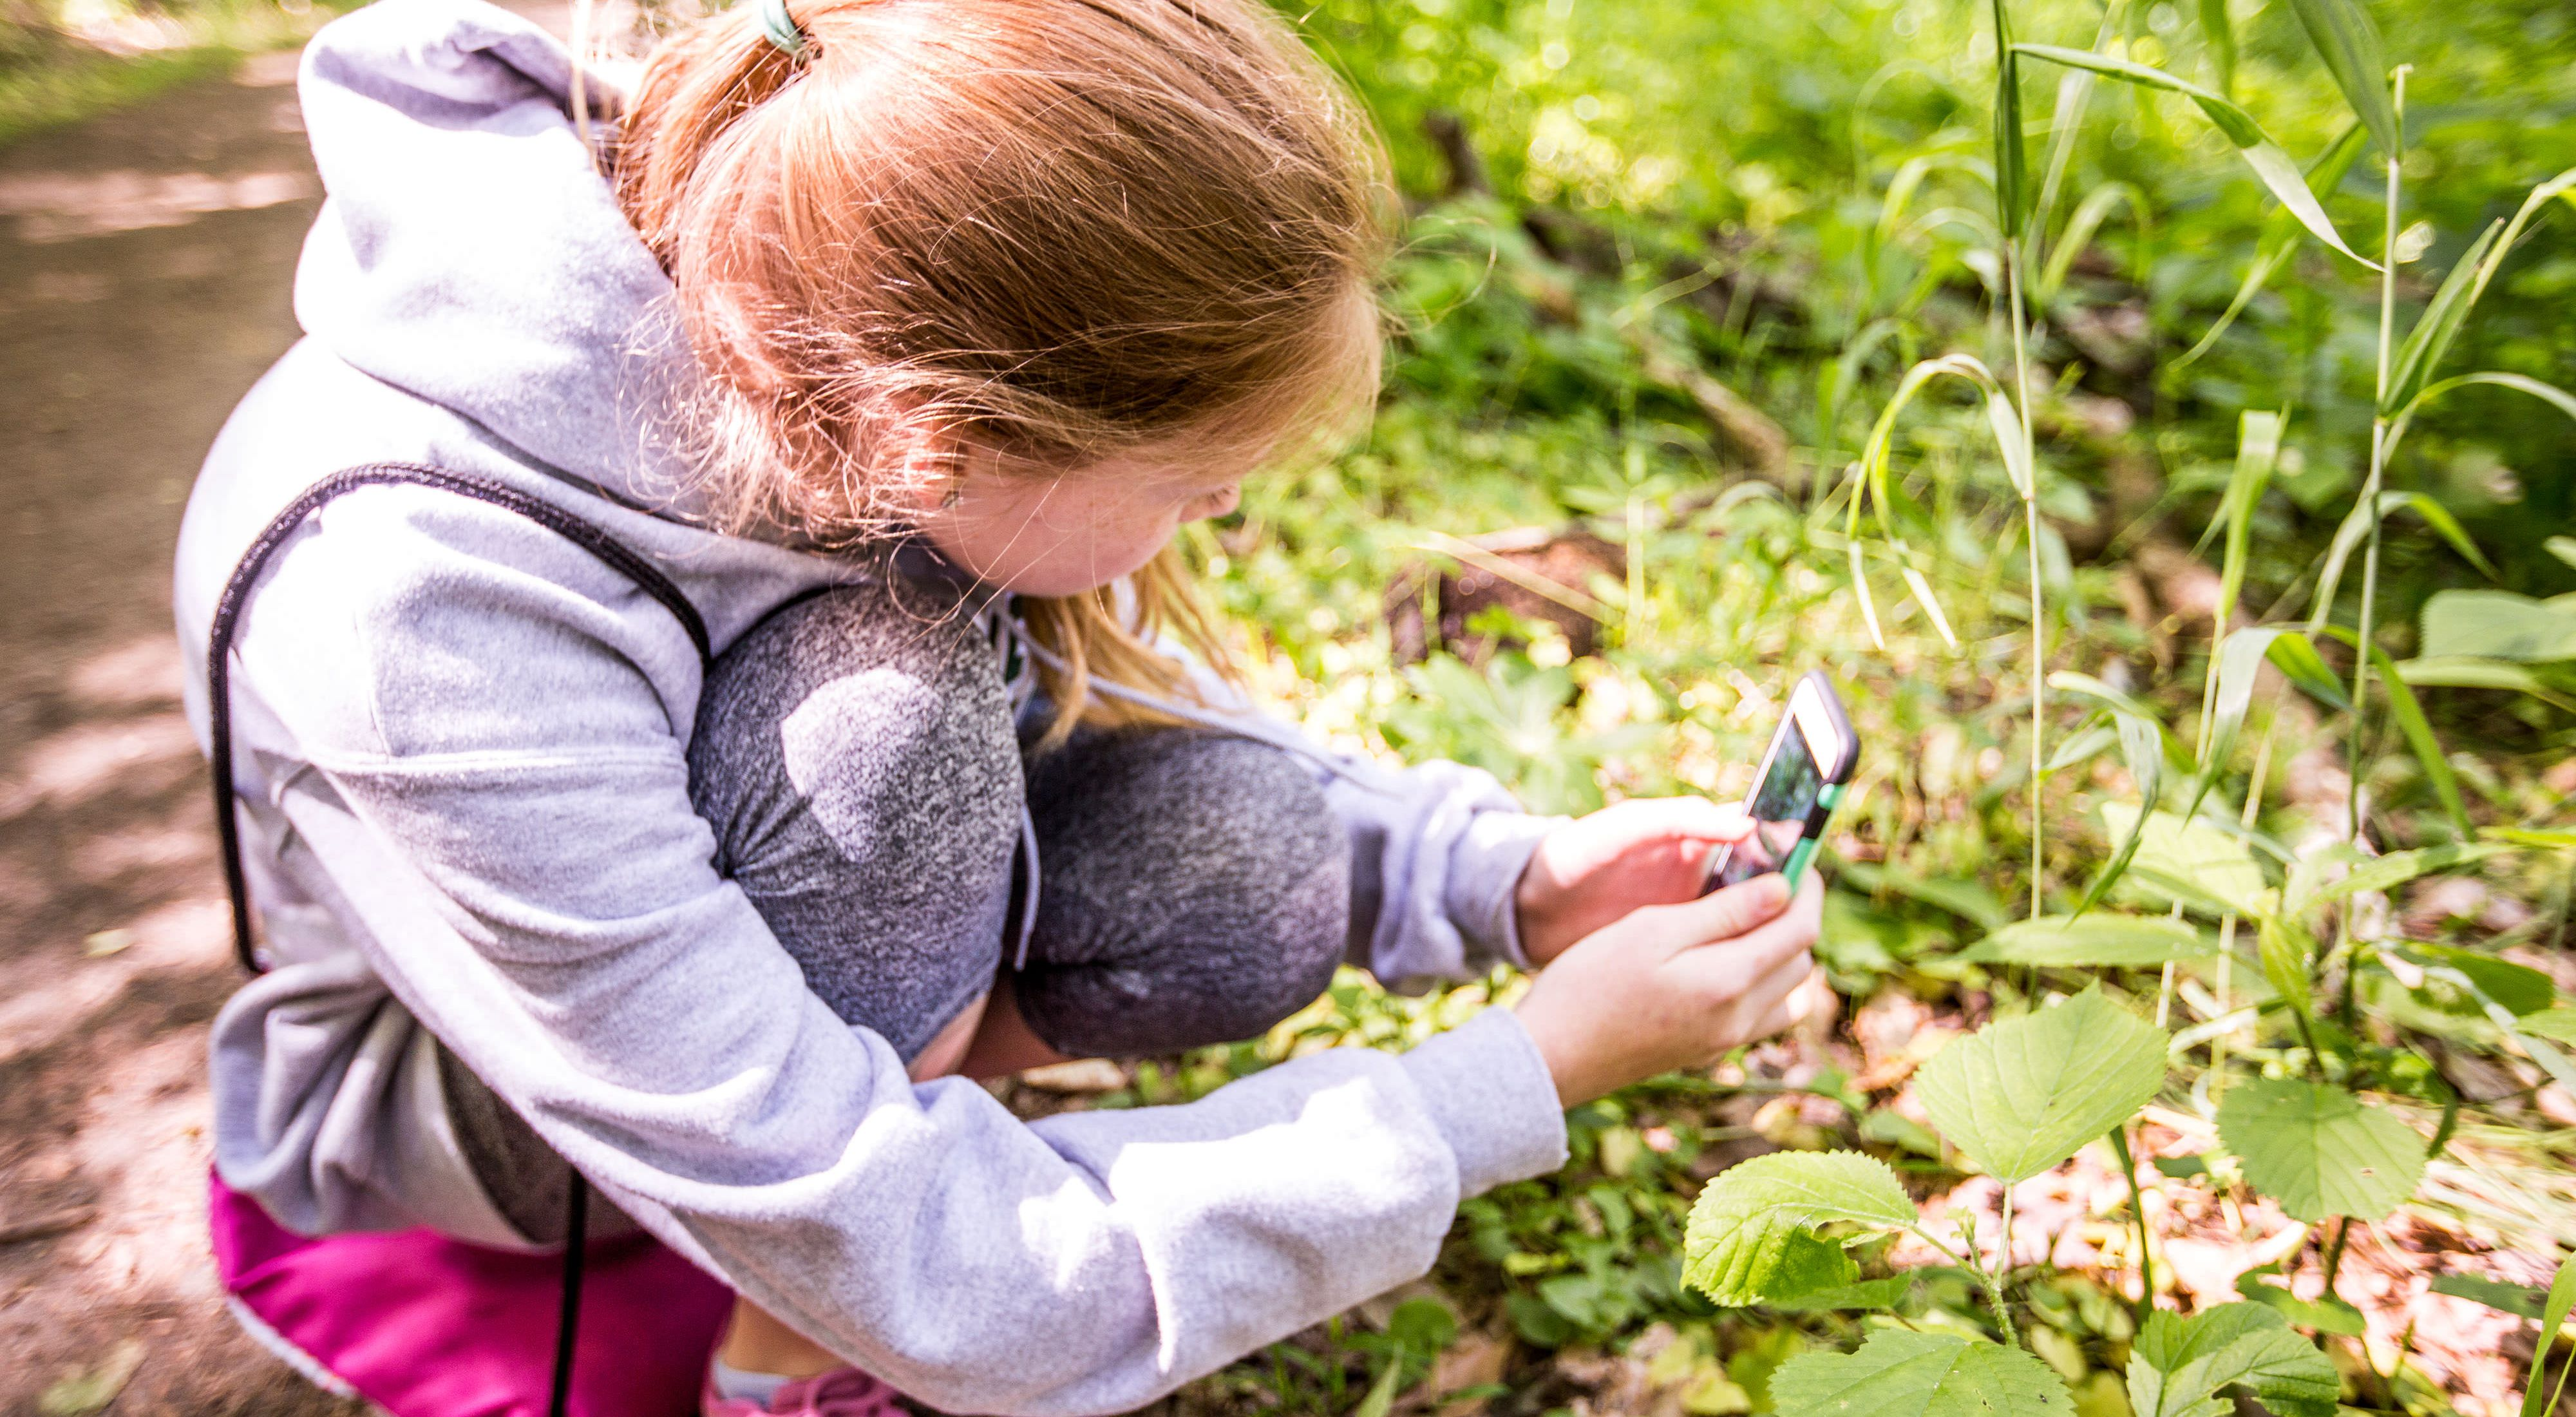 A young girl crouches down next to a tall leafy plant to take a photo with her cell phone.